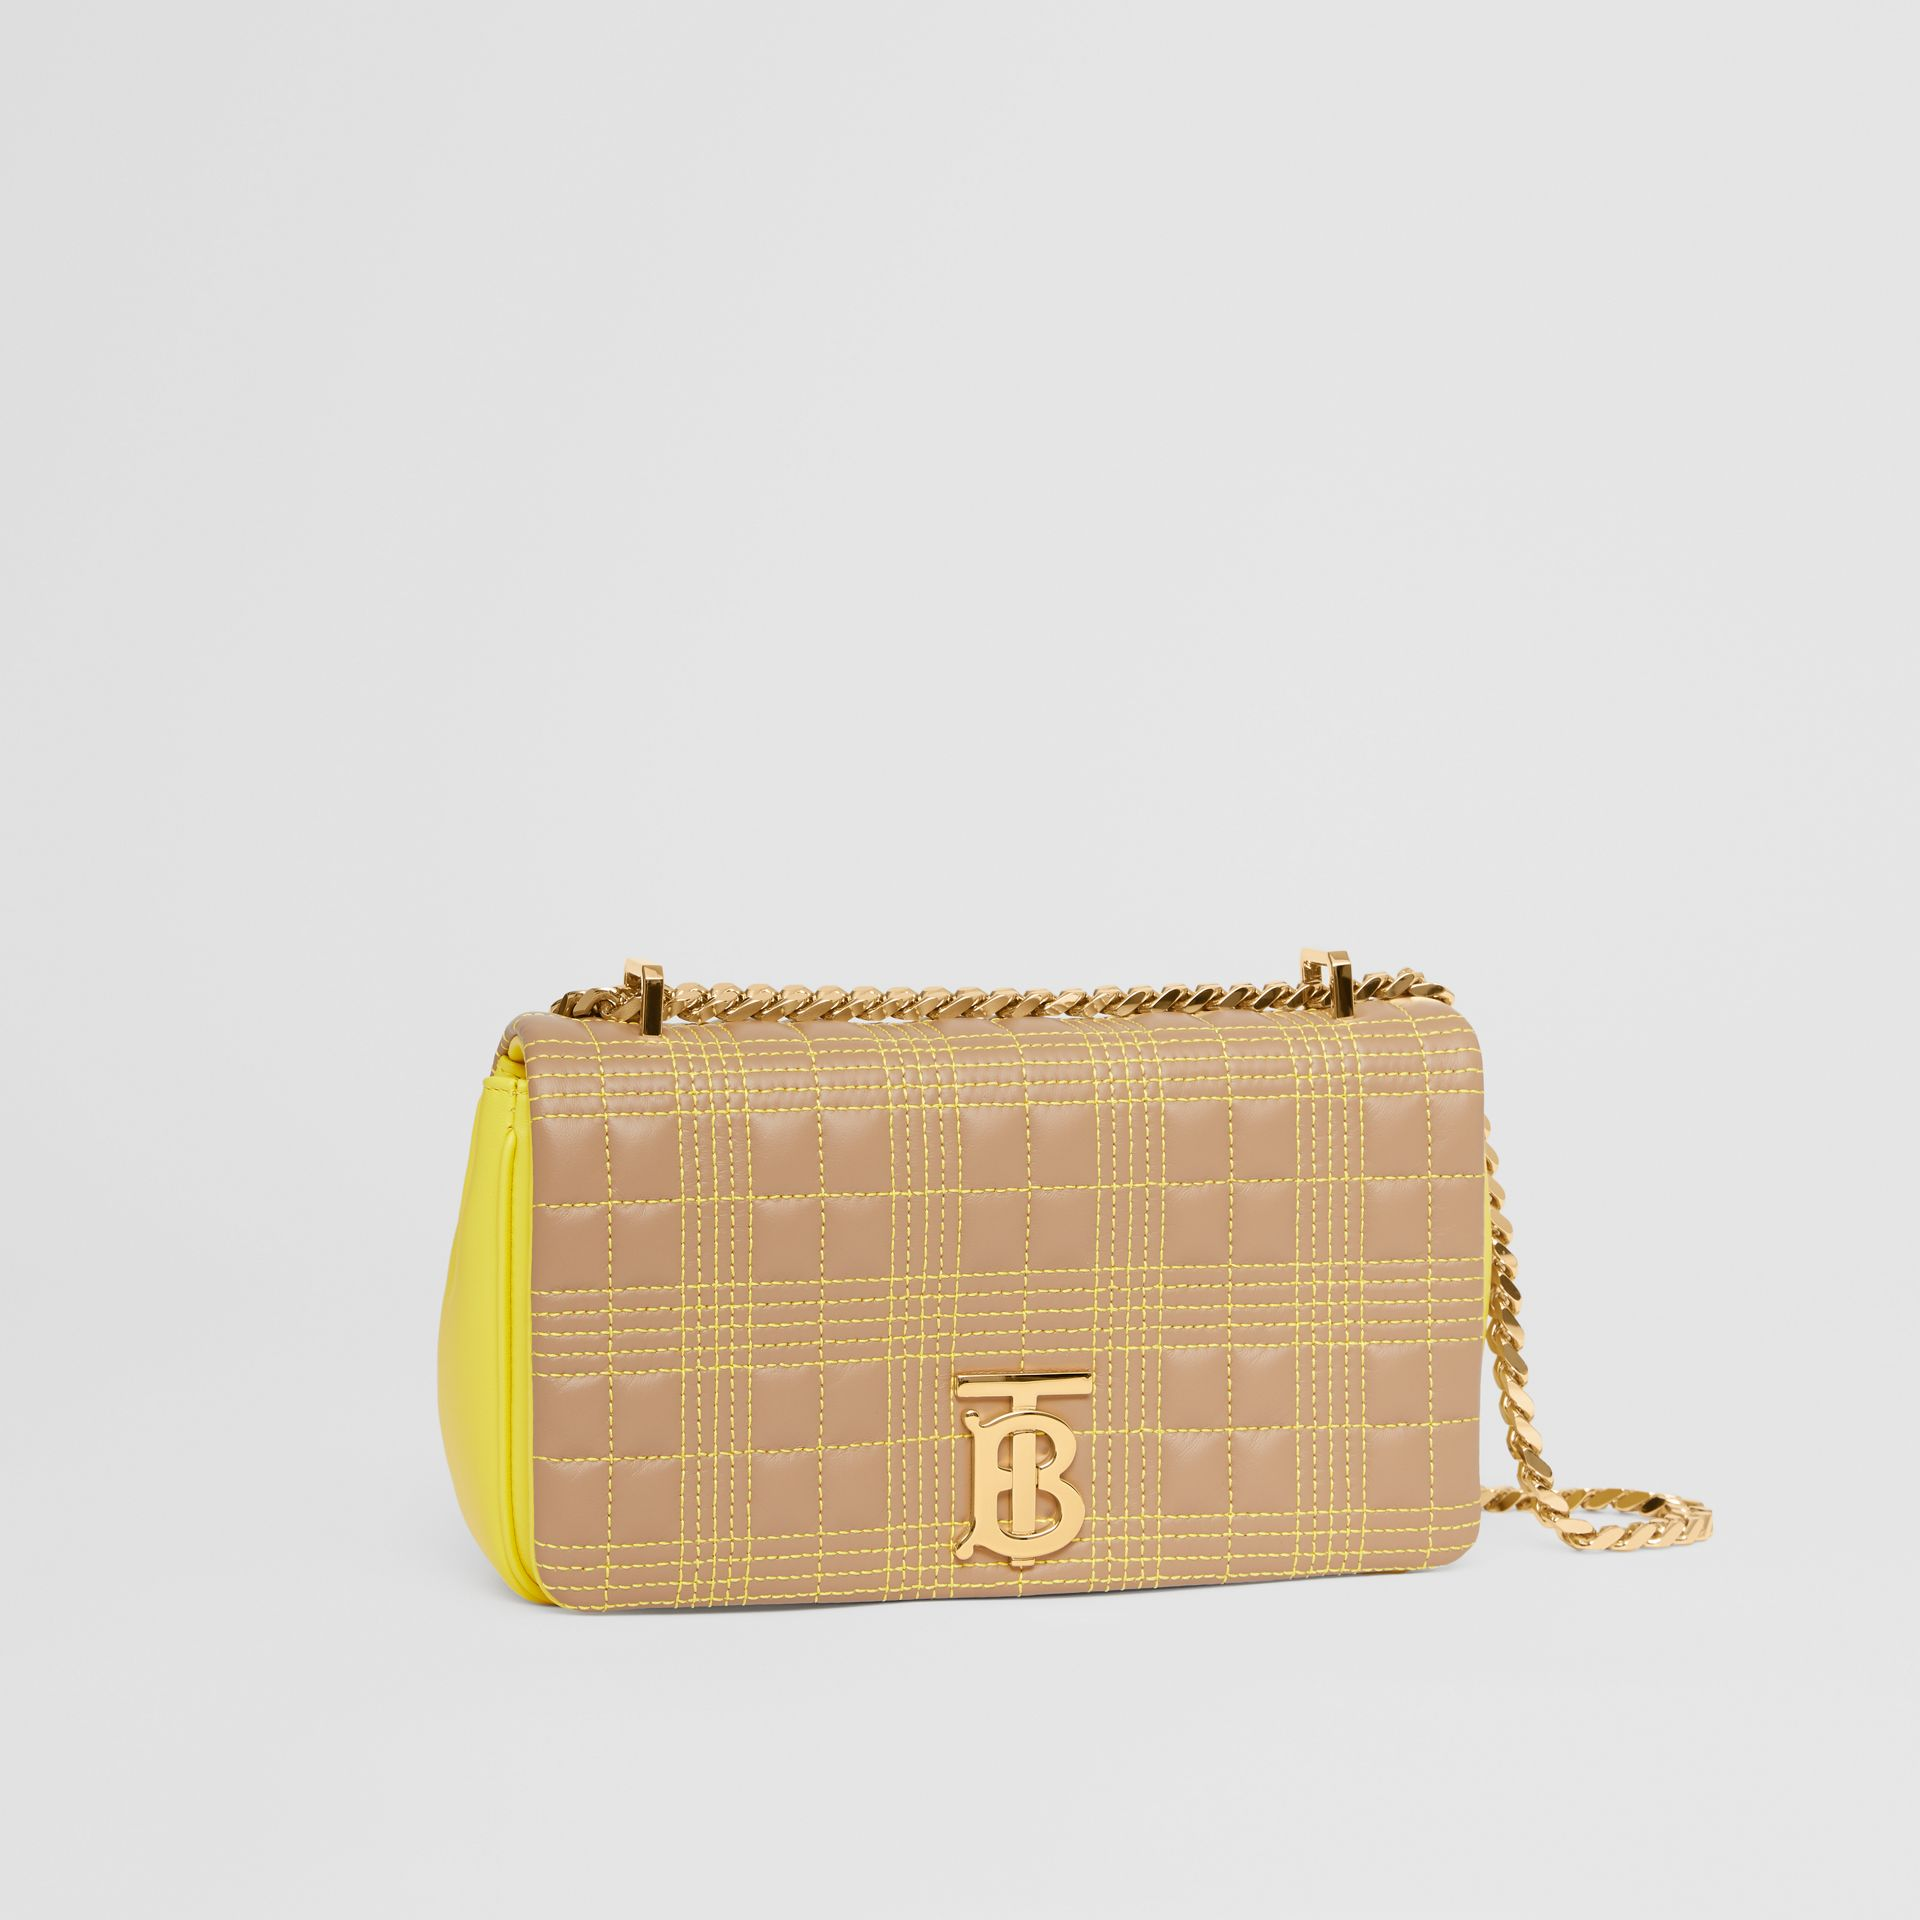 Small Quilted Tri-tone Lambskin Lola Bag in Camel/yellow - Women | Burberry Canada - gallery image 6